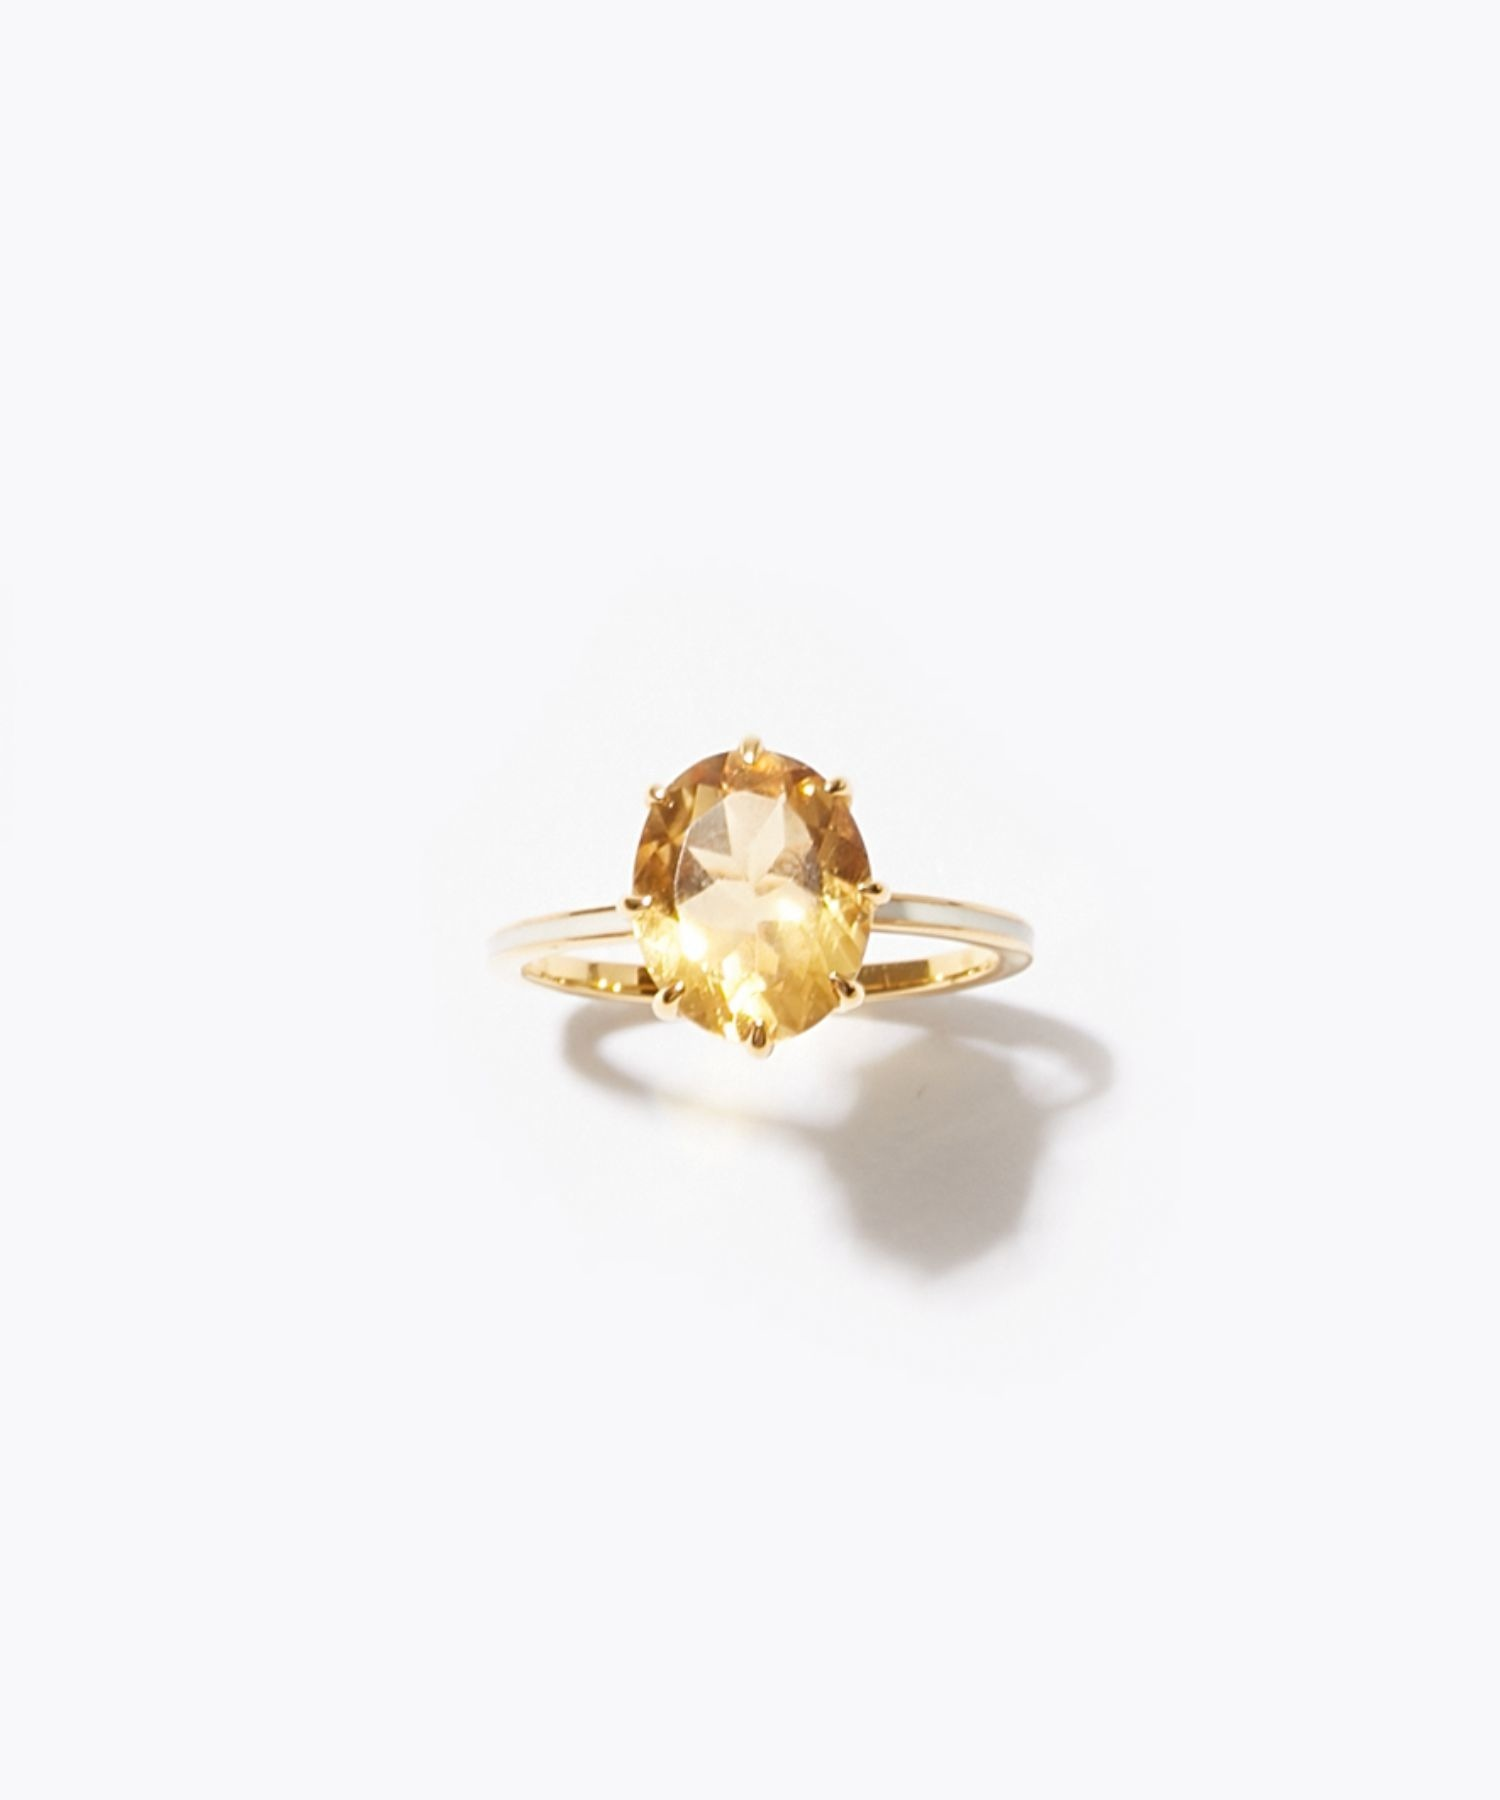 [eden] K10 oval citrine and white enamel ring